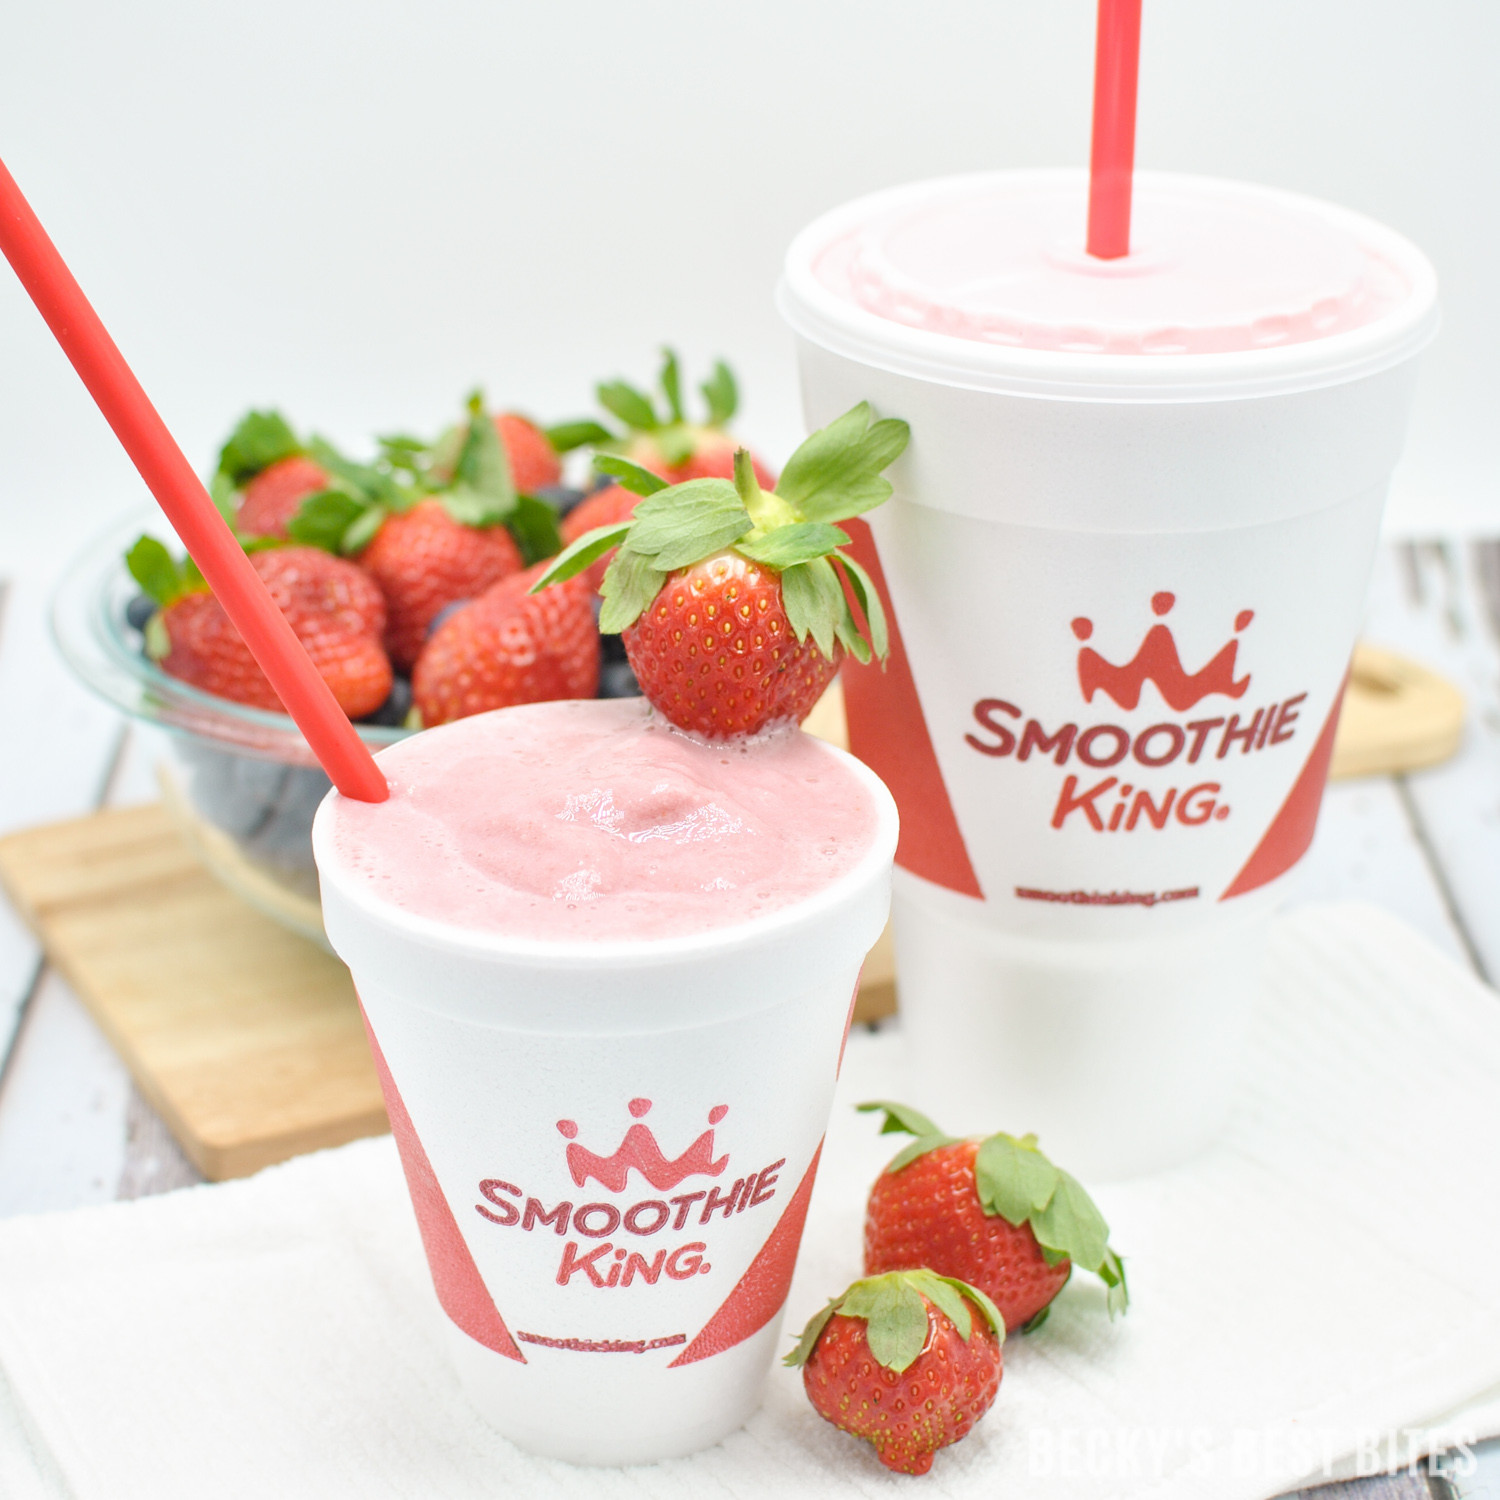 Healthy Smoothies At Smoothie King  Change A Meal Challenge with Smoothie King